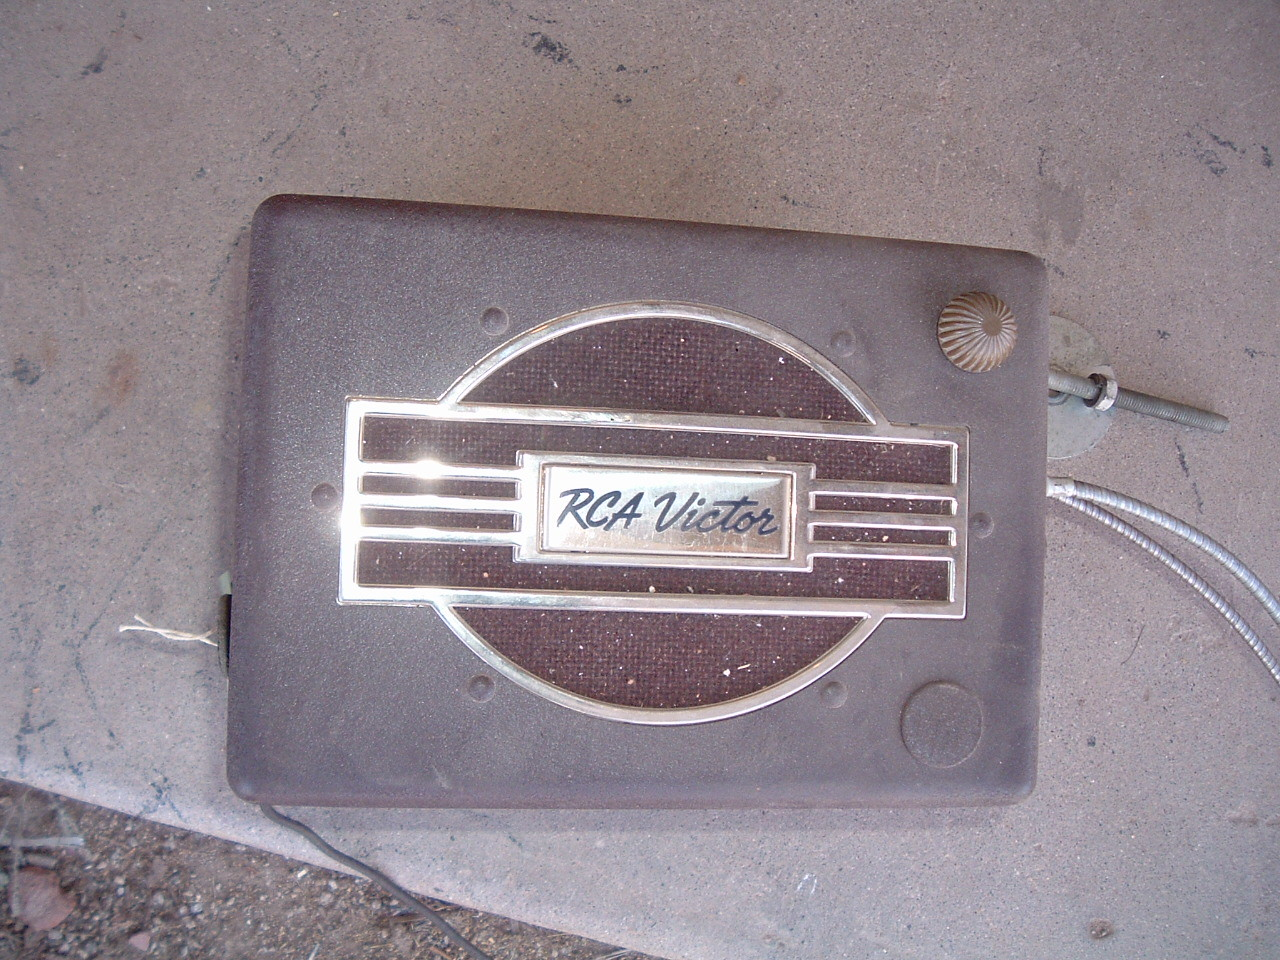 1938 RCA victor car radio new model # 8M3 (z 8m3)